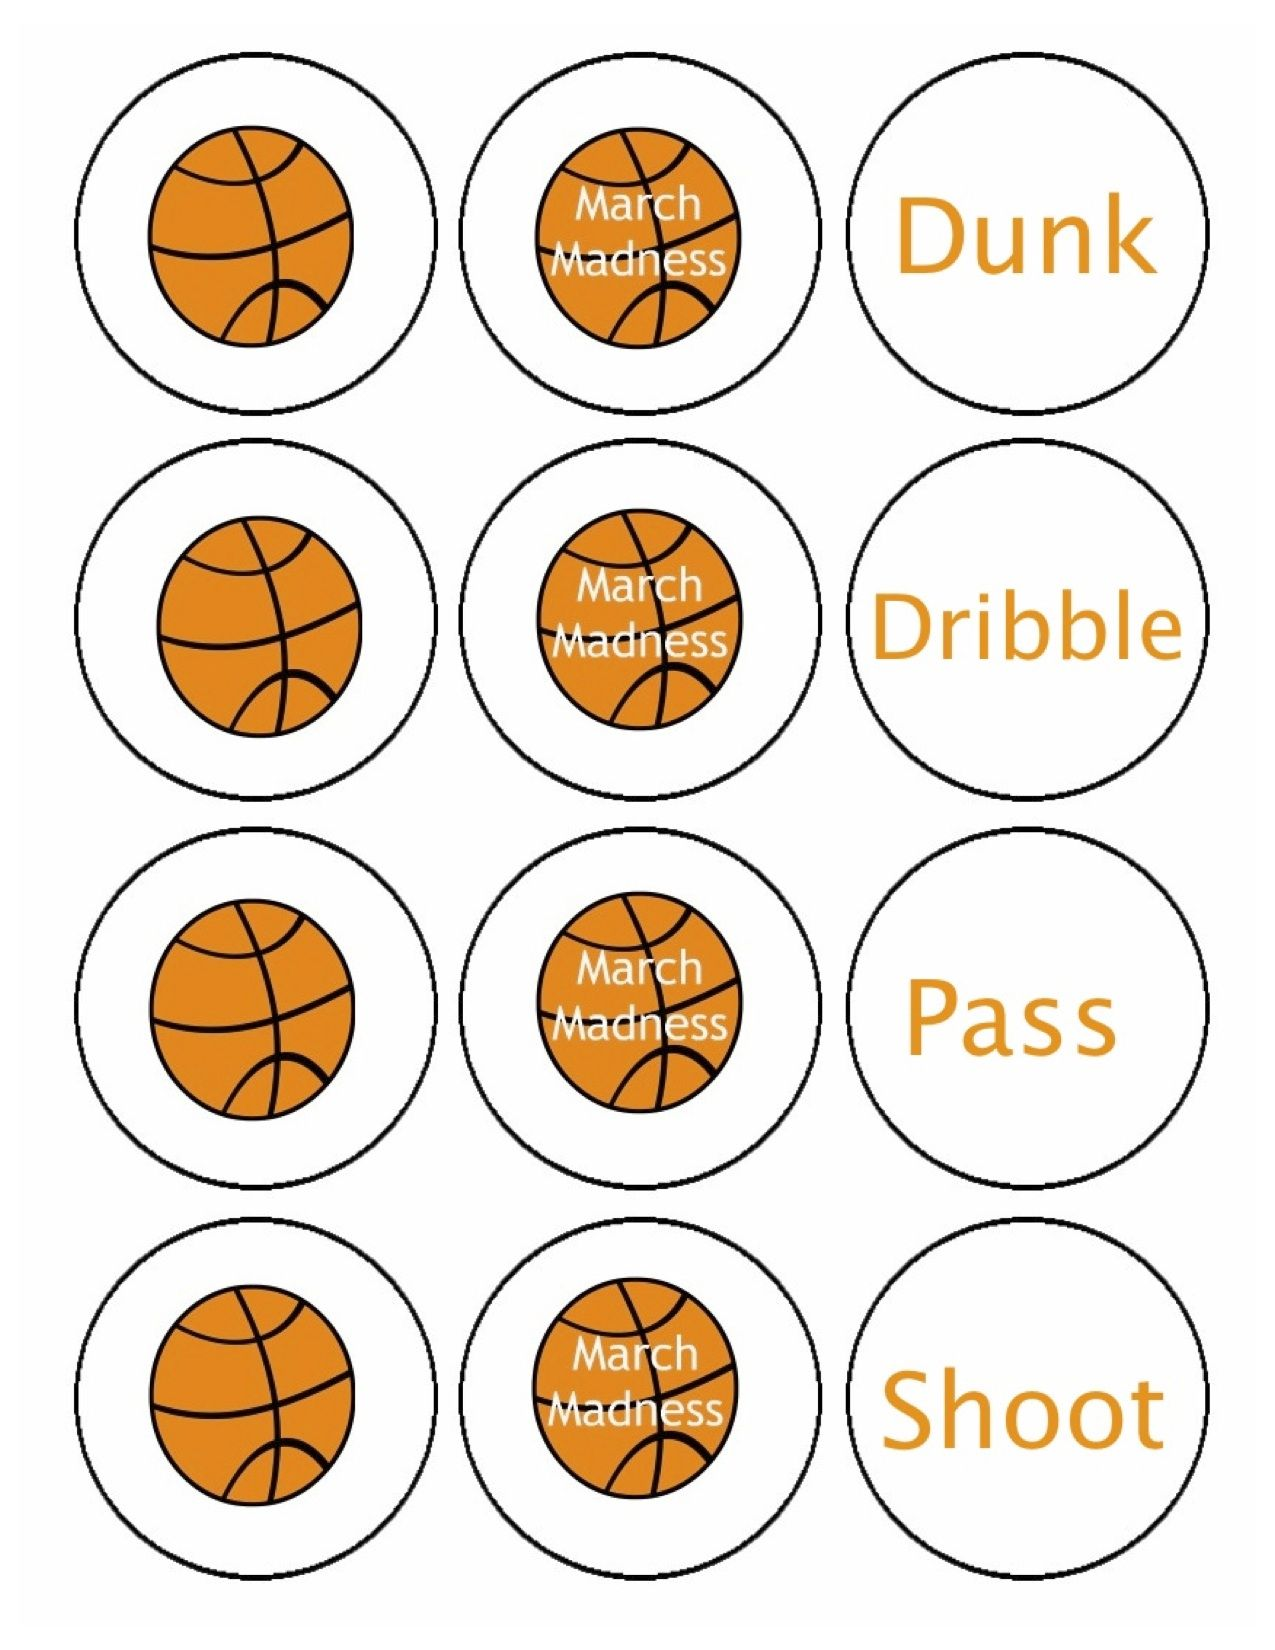 Basketball Circles For Cupcake Toppers March Madness Parties March Madness Decorations March Madness Birthday Party